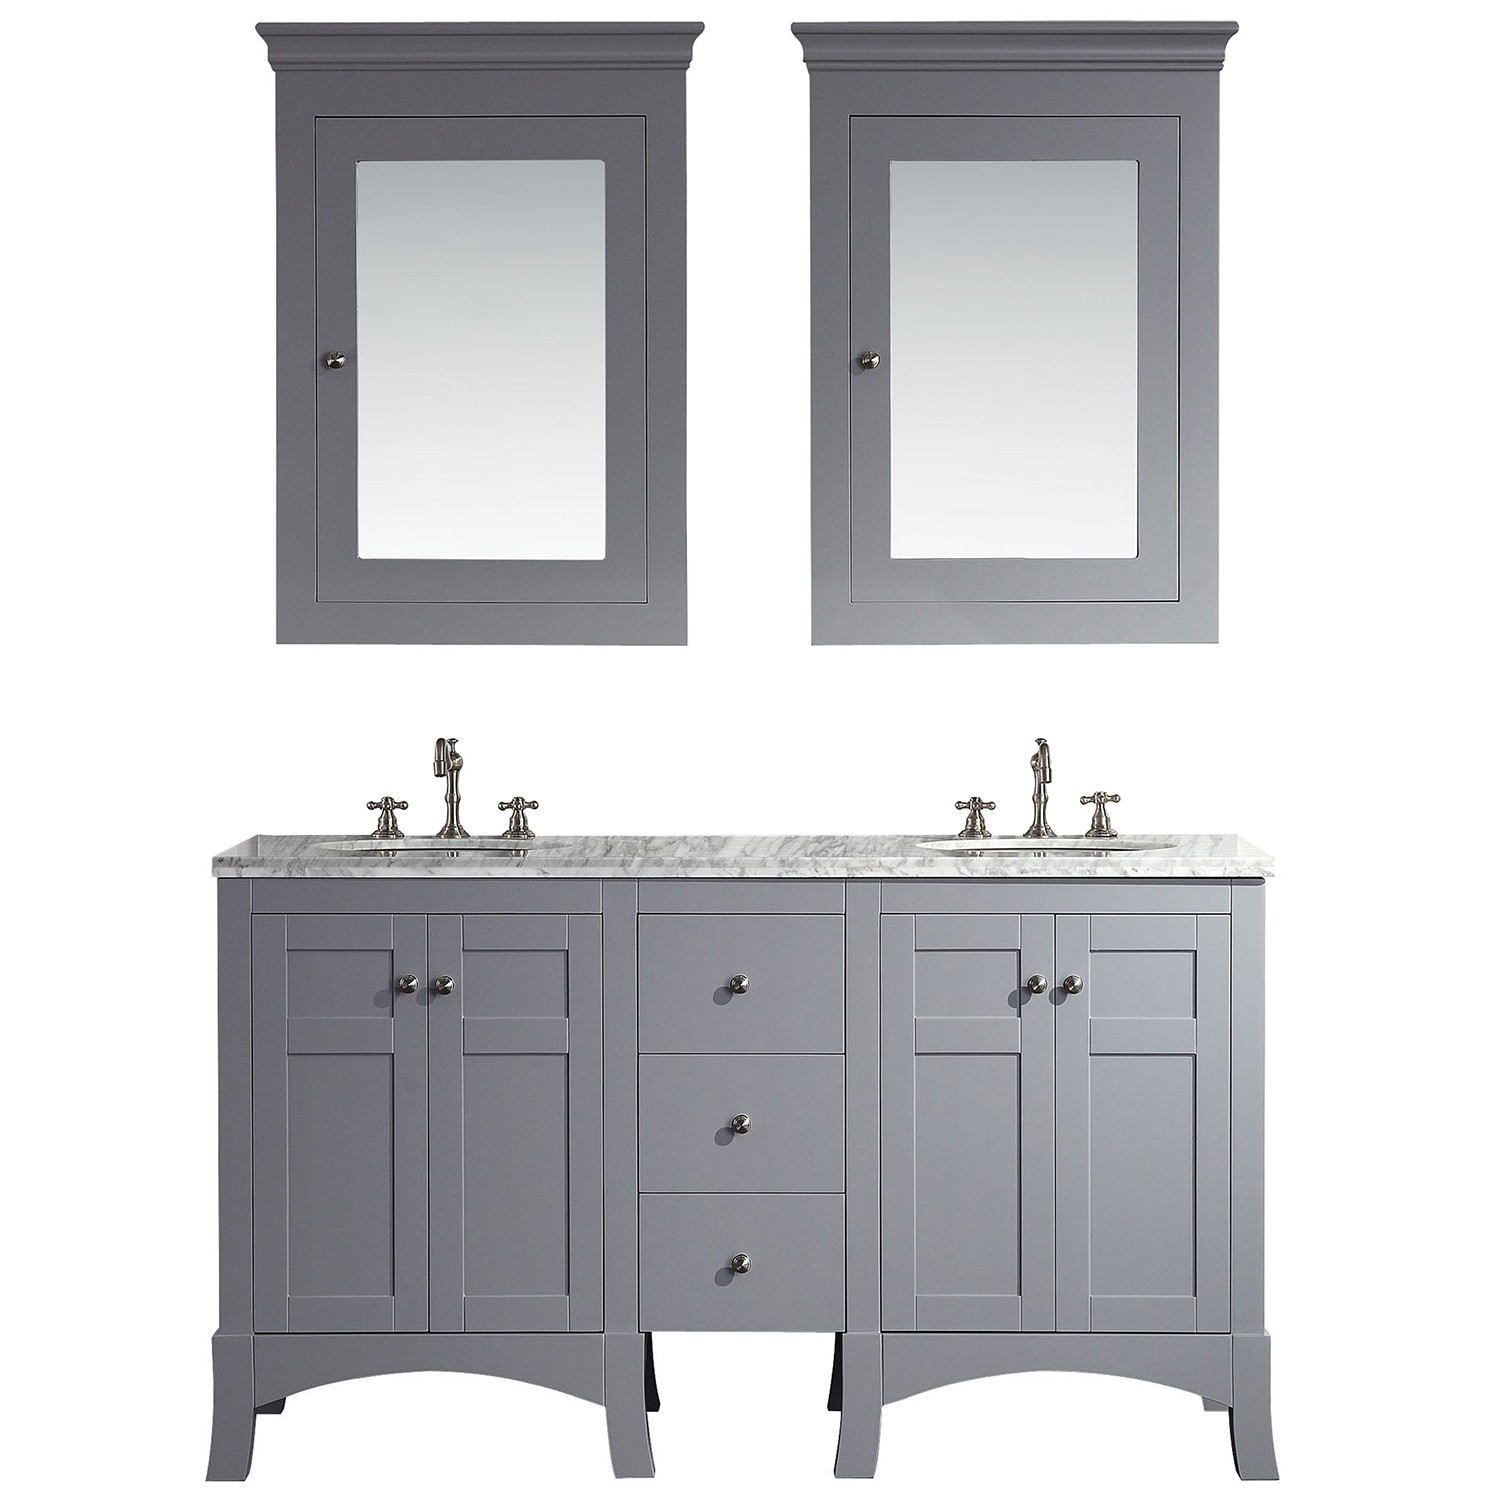 Eviva New York 60 Grey Bathroom Vanity With White Marble Carrera Counter Top Sink Decors Us